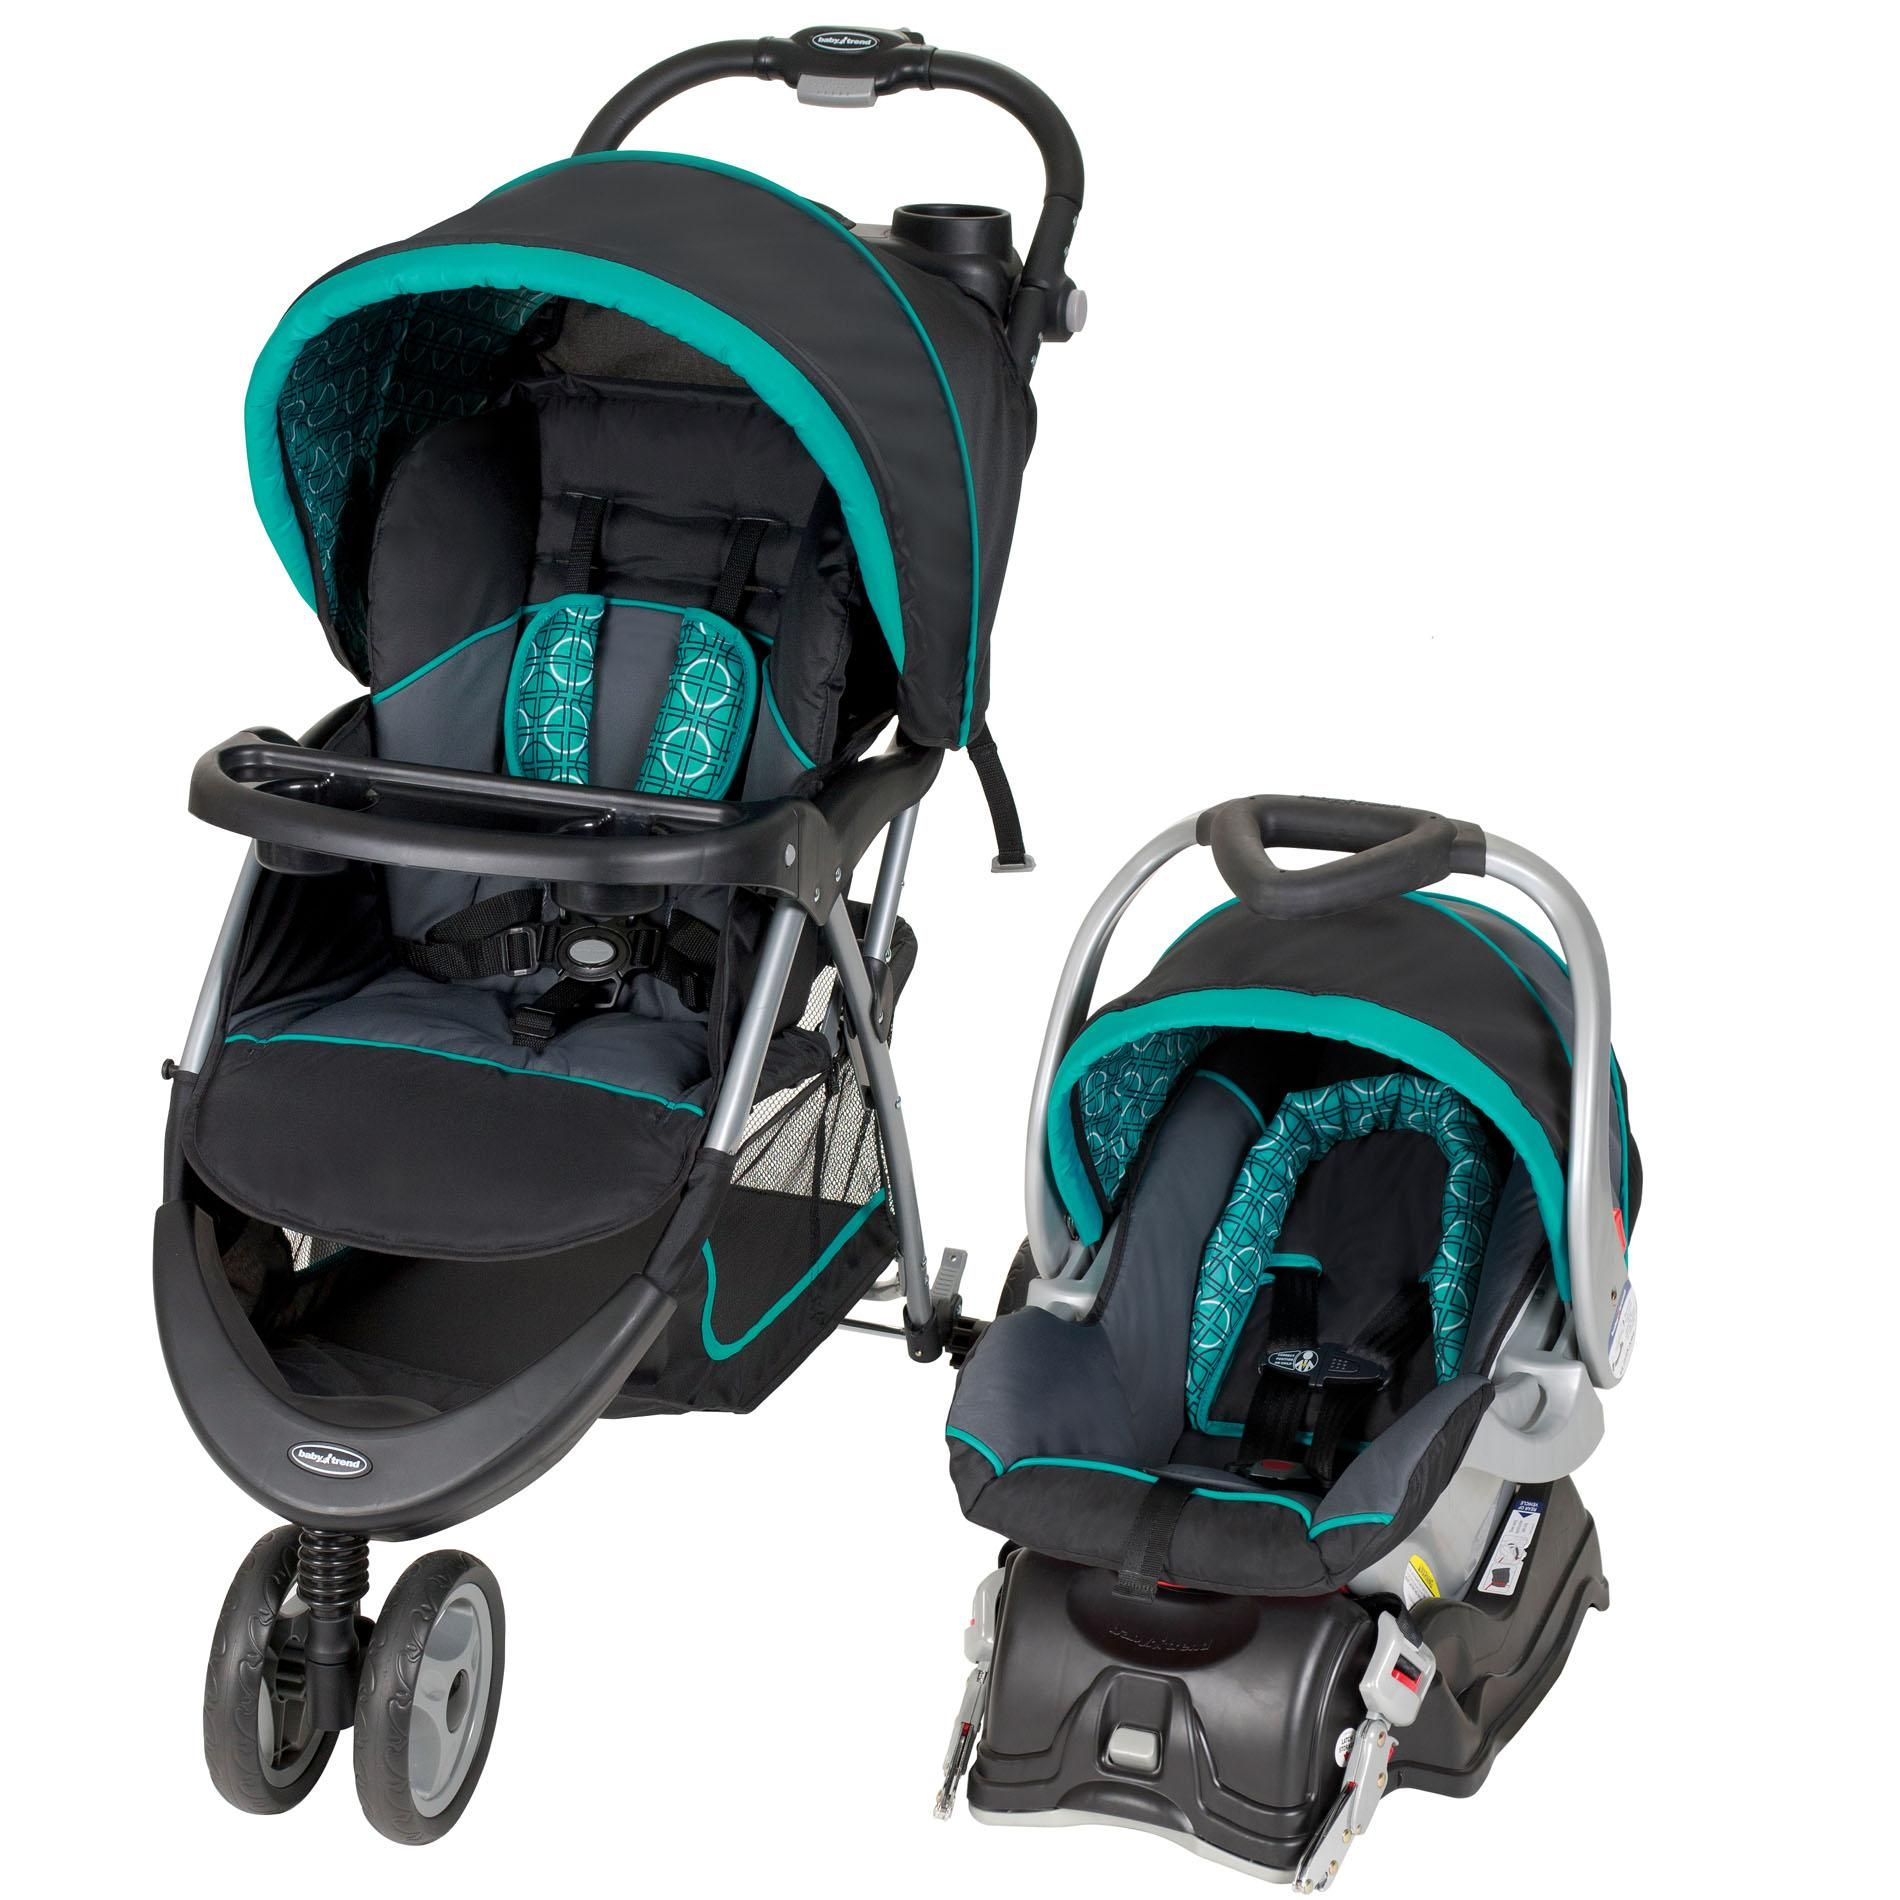 Toy Buggy With Car Seat Kmart Deals On Furniture Toys Clothes Tools Tablets